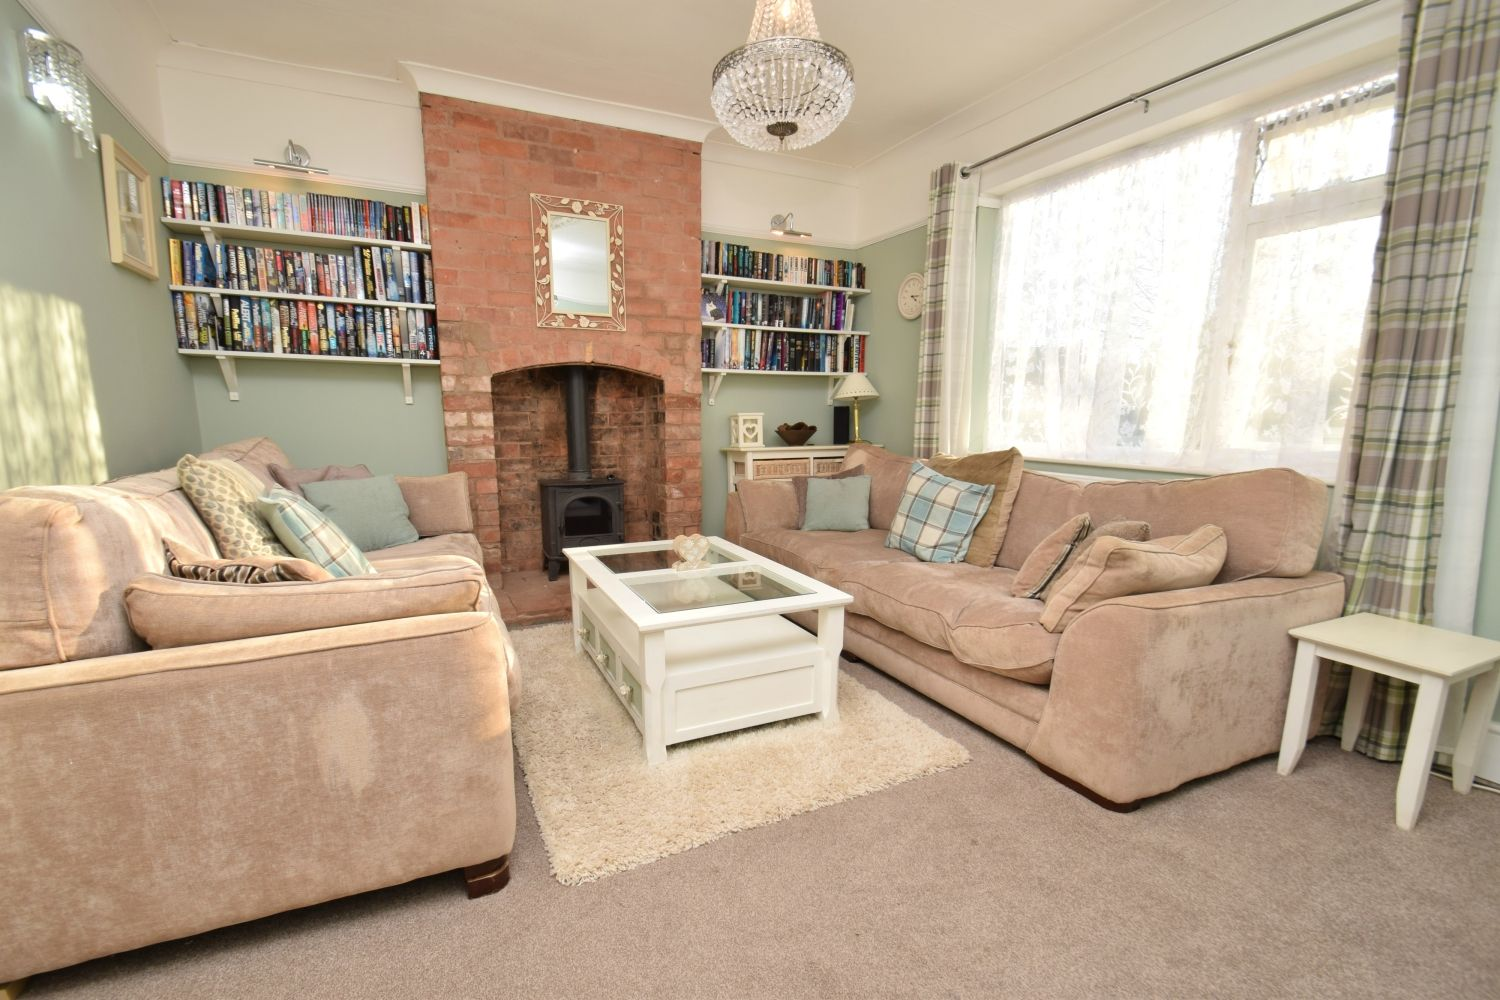 4 bed semi-detached for sale in Upland Grove, Bromsgrove, B61 5